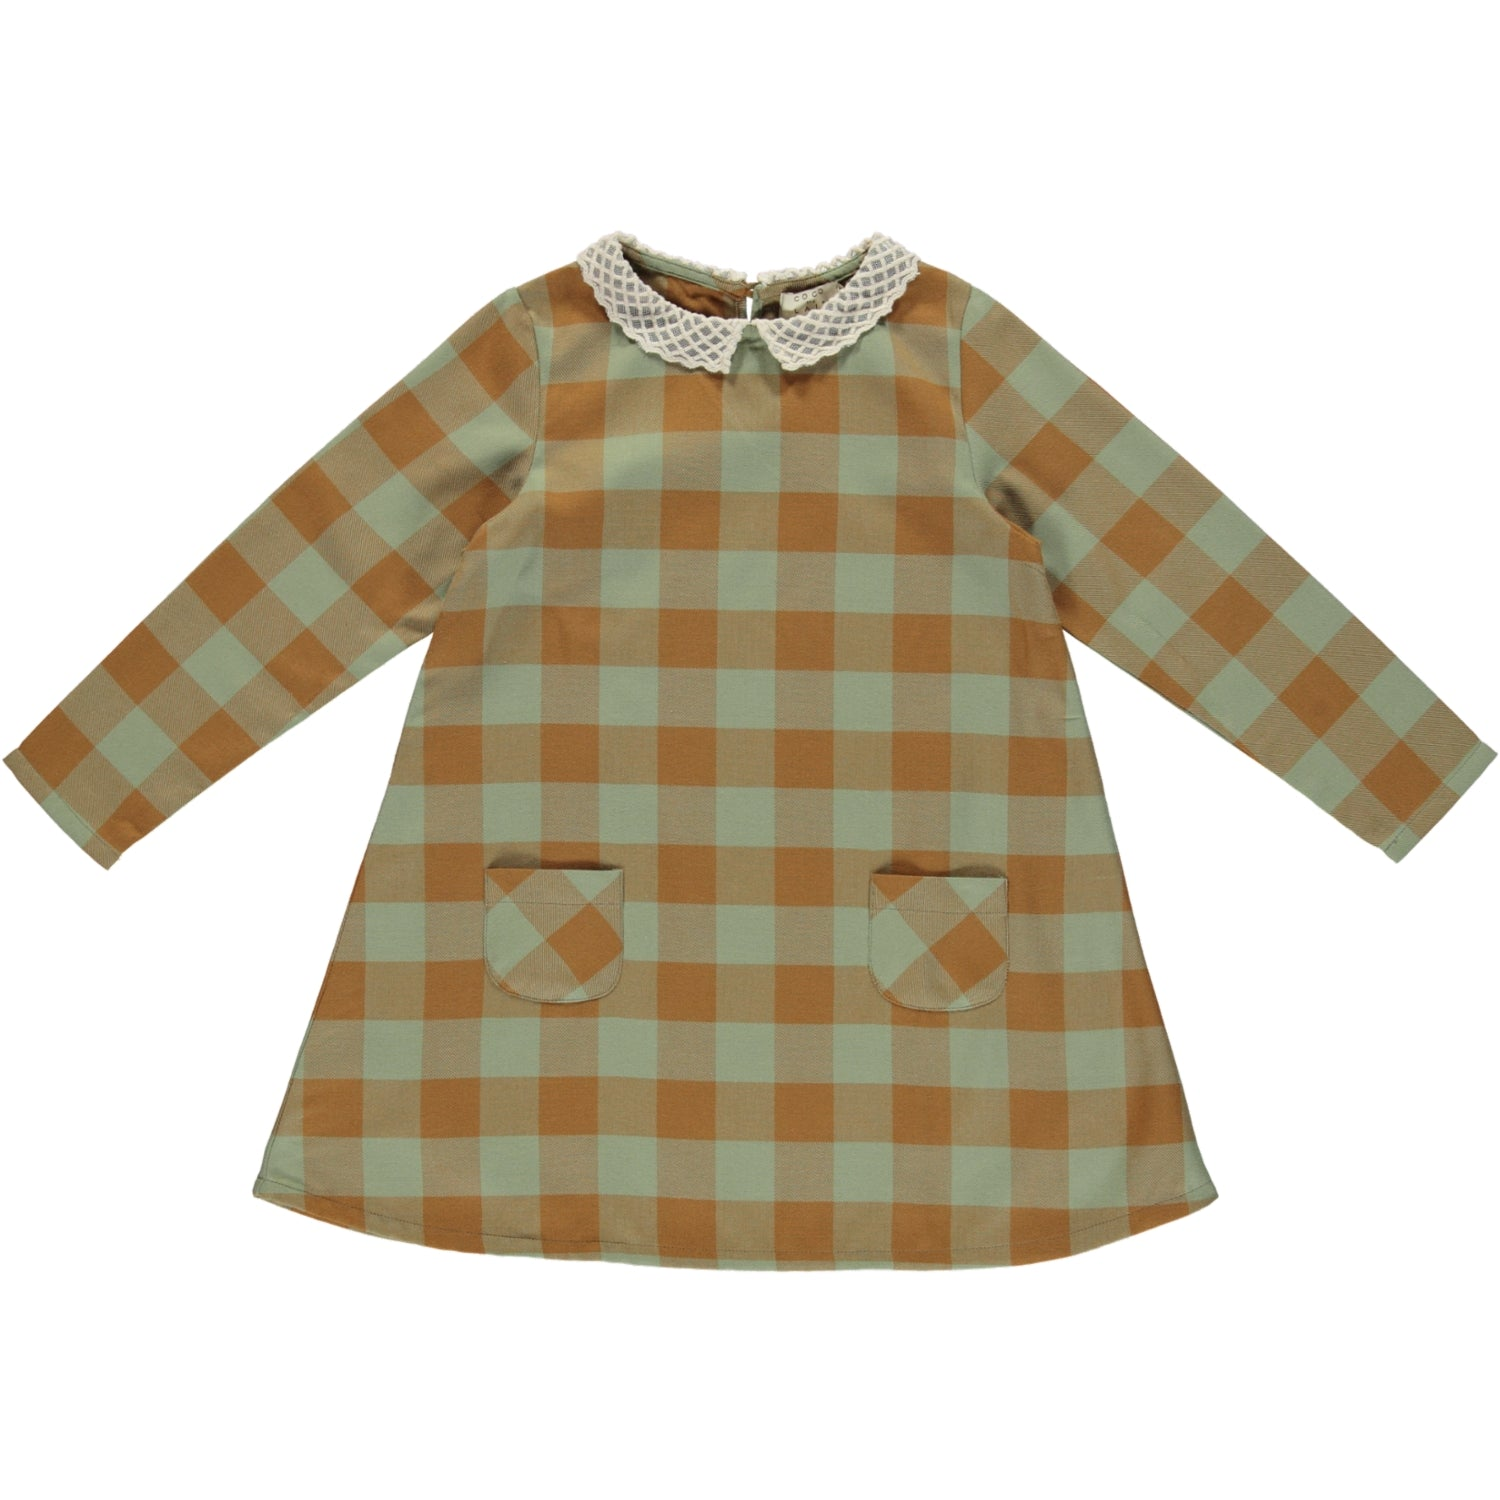 Load image into Gallery viewer, Coco Au Lait CHECKERED DRESS Dress Multicolor Squares